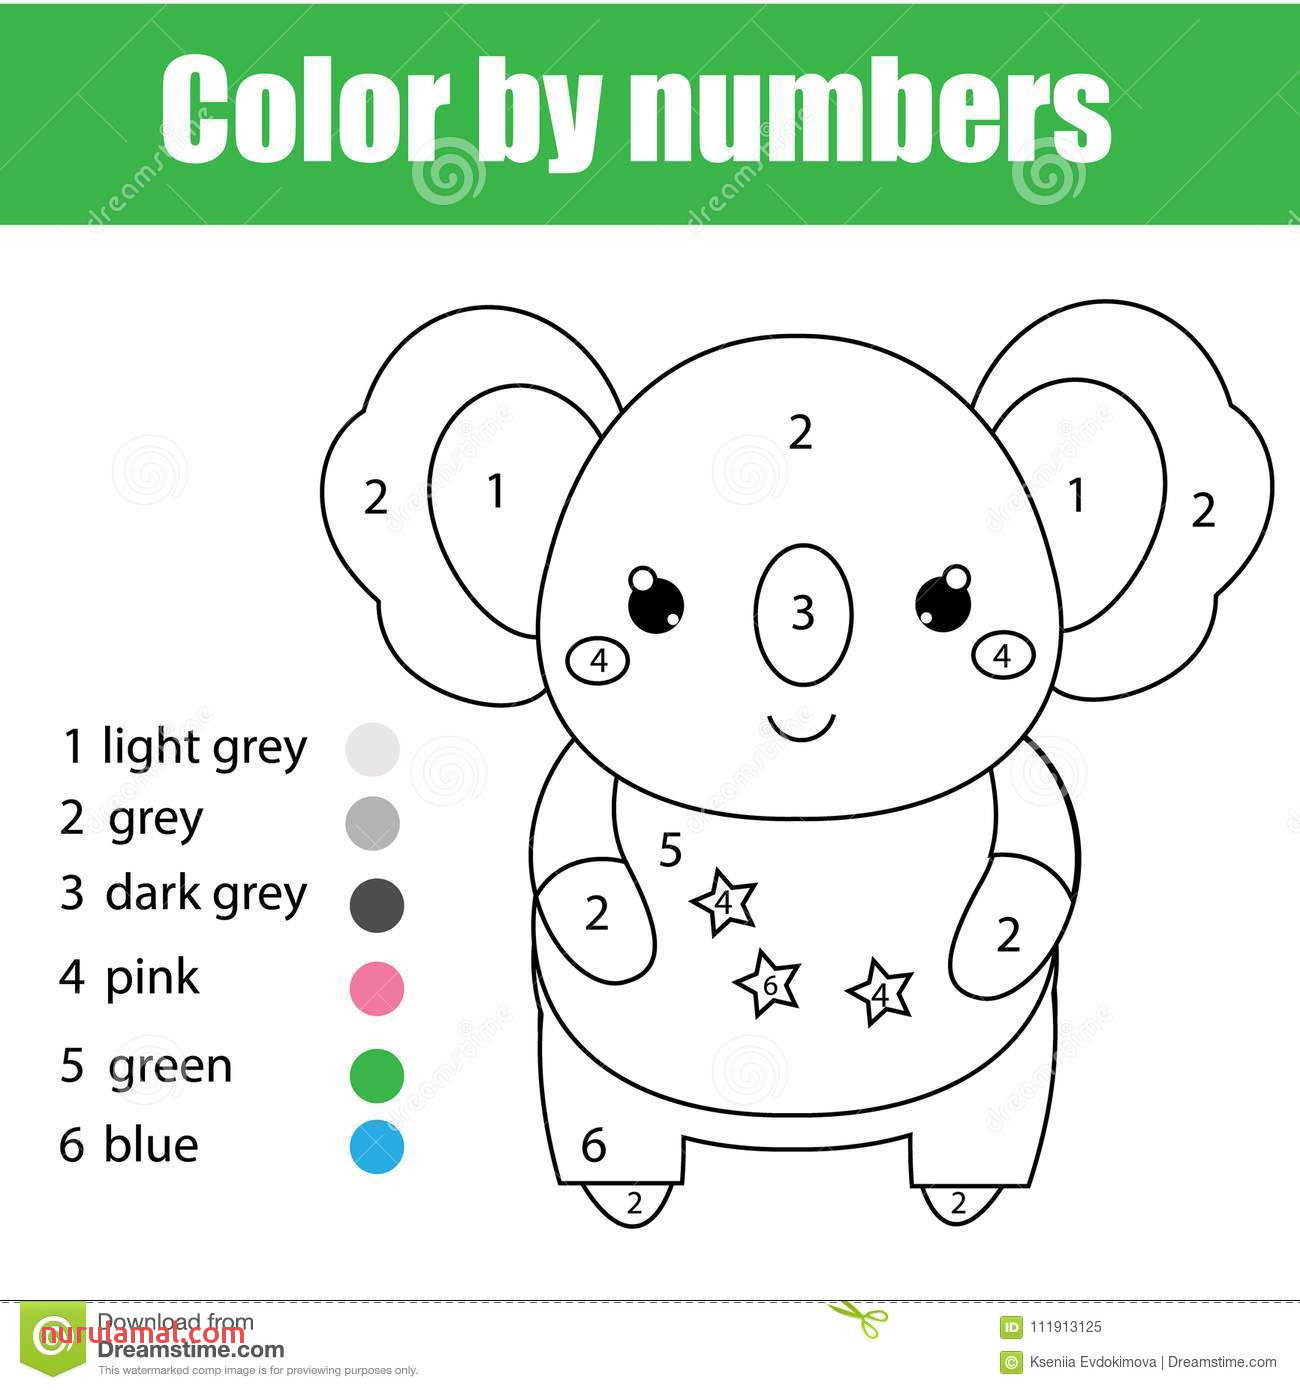 color by number worksheets for kindergarten basford coloring books colorama book pages colored little pony stained glass adults square mouse paint lego secret garden finished mickey